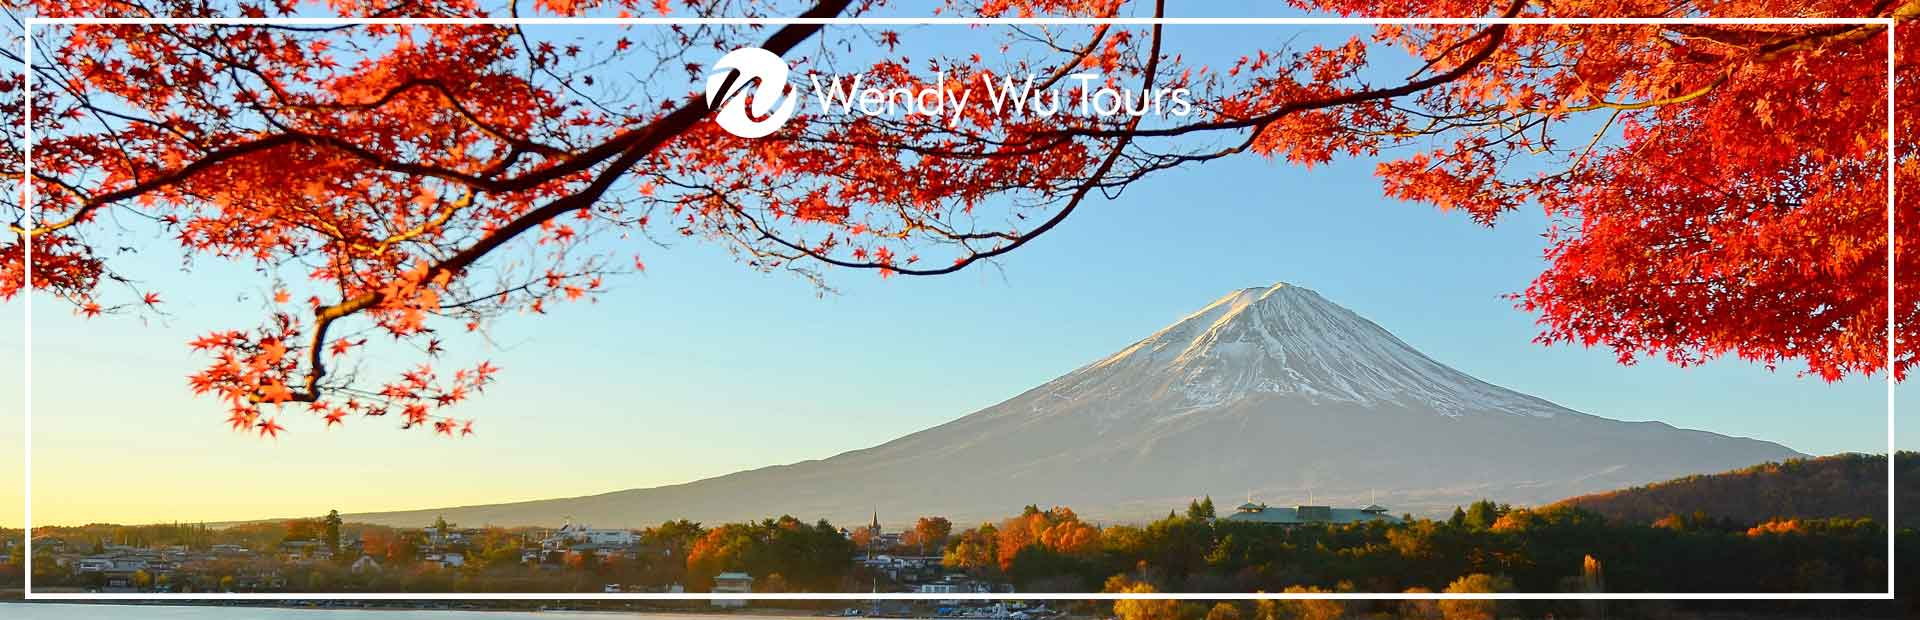 Mt Fuji, surrounded by Japan autumn leaves